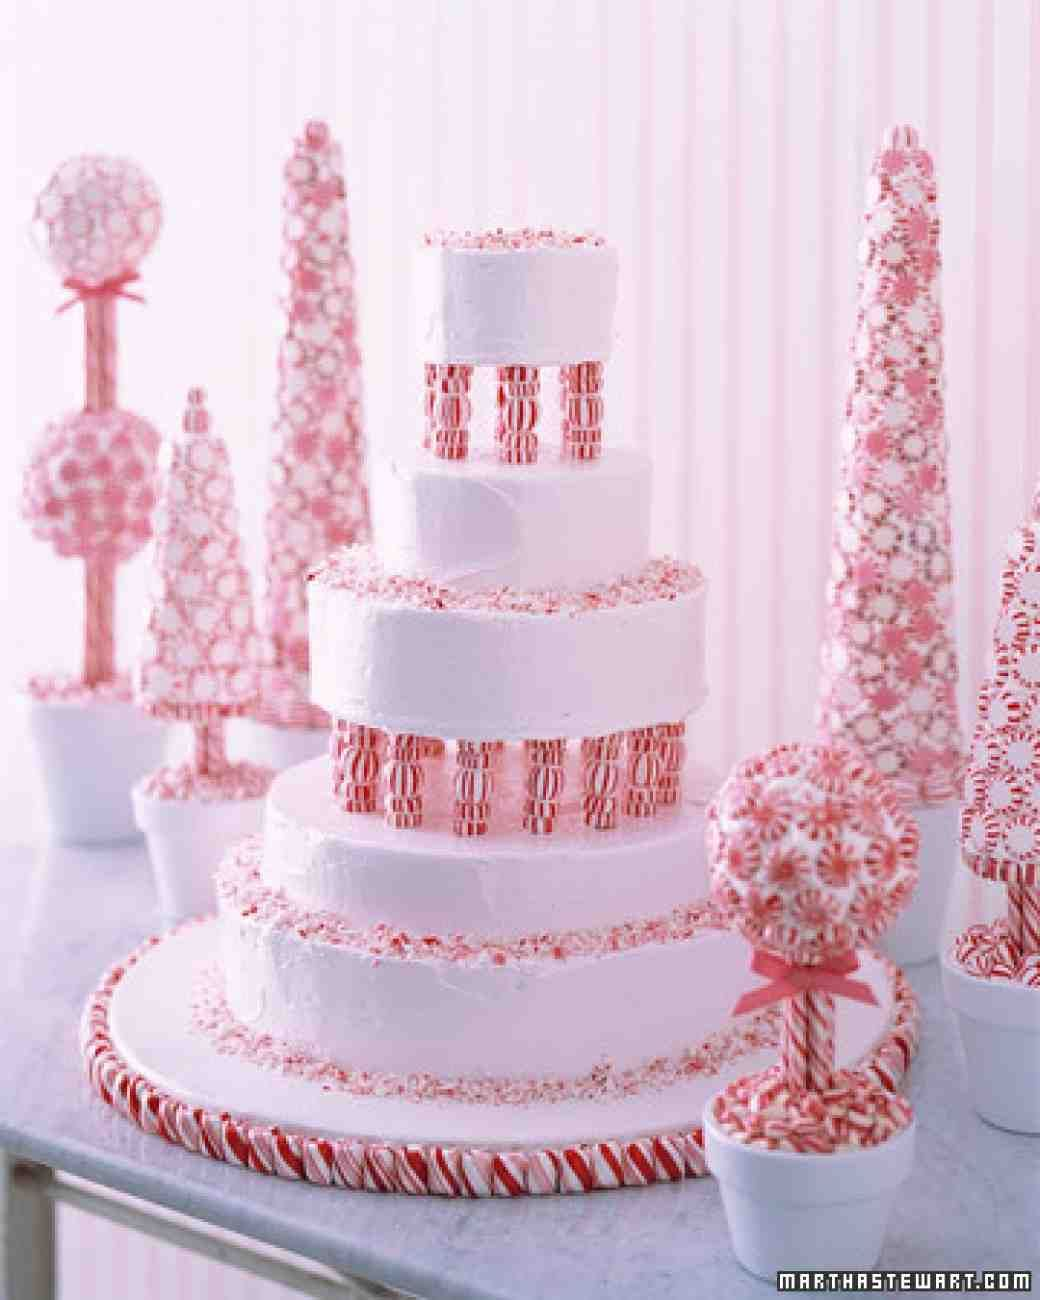 Candy Cakes | Pinterest | Candy cakes, Candies and Martha stewart ...